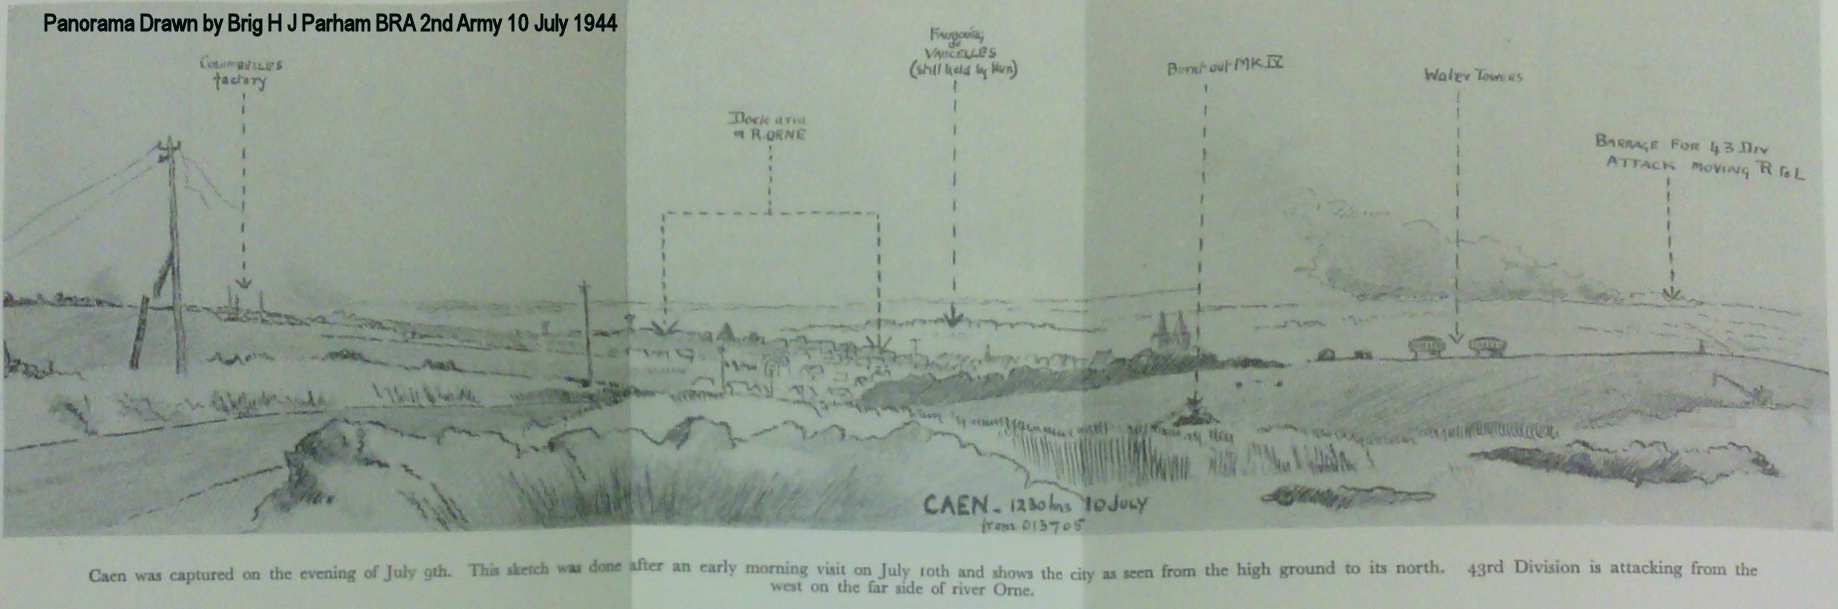 Panorama drawn by Brigadier H J Parham  BRA 2nd Army from GR 013705 on the high ground North of Caen at 12.30 on 10th July 1944.